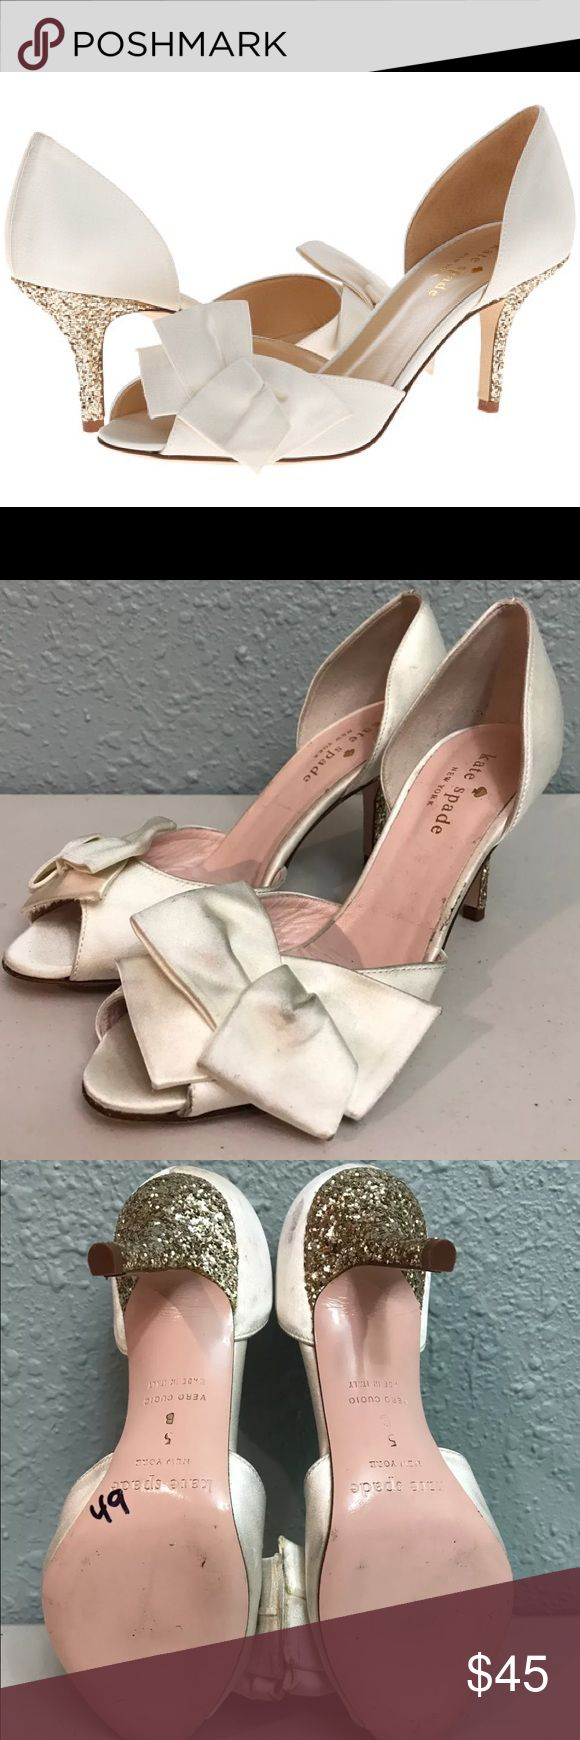 """Kate Spade """"Sala"""" Satin Bow Glitter Heels size 5 These are cream colored with a satin bow peep toe and gold glitter heel. These were never worn outside but are floor sample / used as display in store so there are marks on them -- selling as fair condition. I would love to keep these but I have wide toes so it's a little tighter than I would like. Needs to be professionally cleaned. This currently sells on like for over $300. Nordstrom is one vendor. First photo is a stock photo kate spade…"""